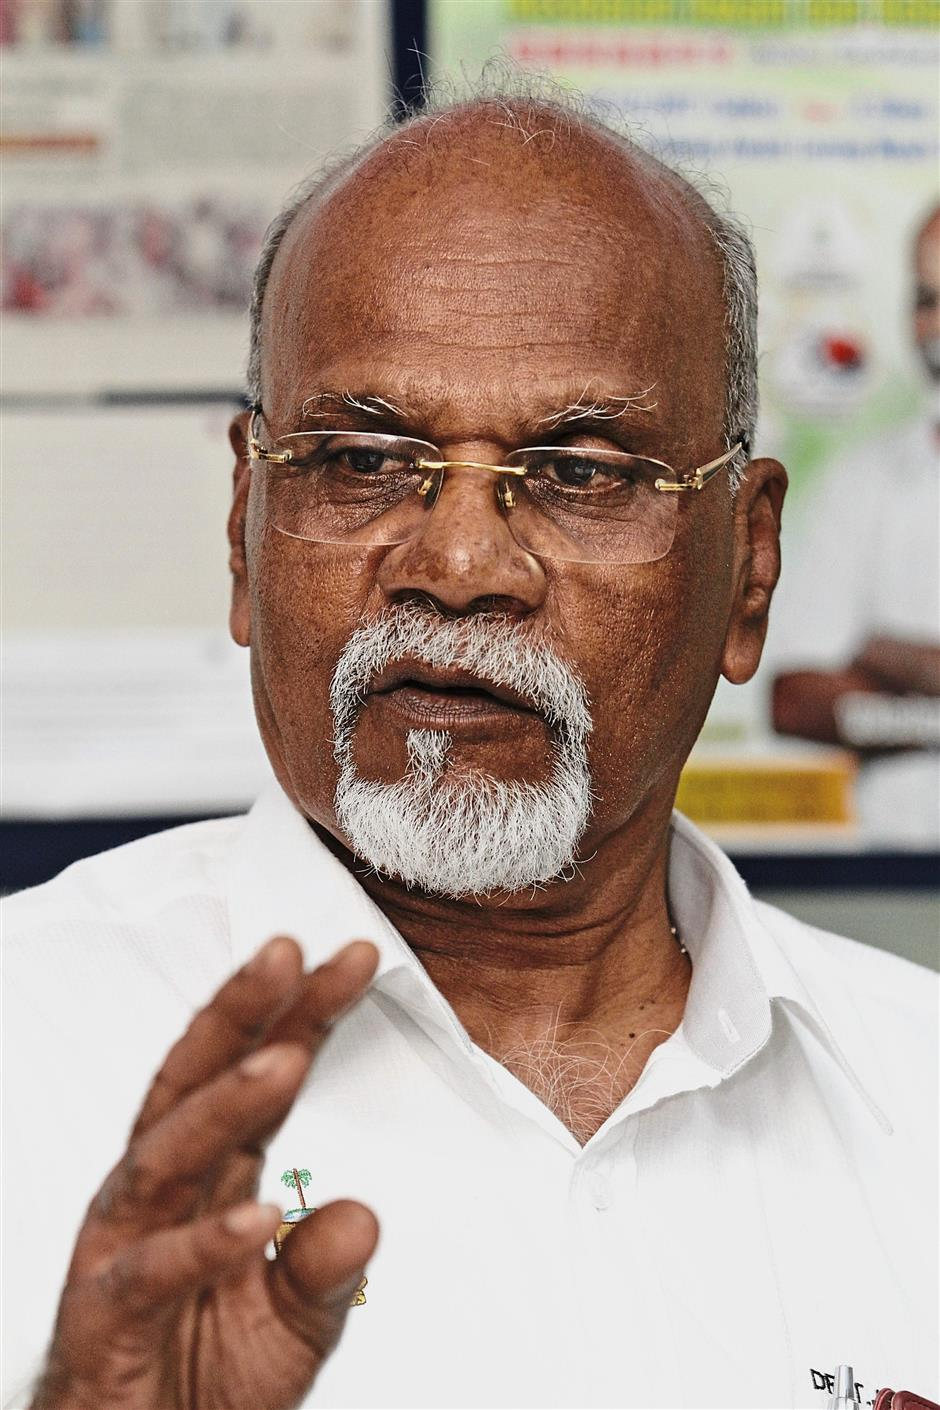 Dr Jayabalan has proposed the formation of a caucus to give ideas and to keep watch on the state government on matters such as environment, floods and housing.